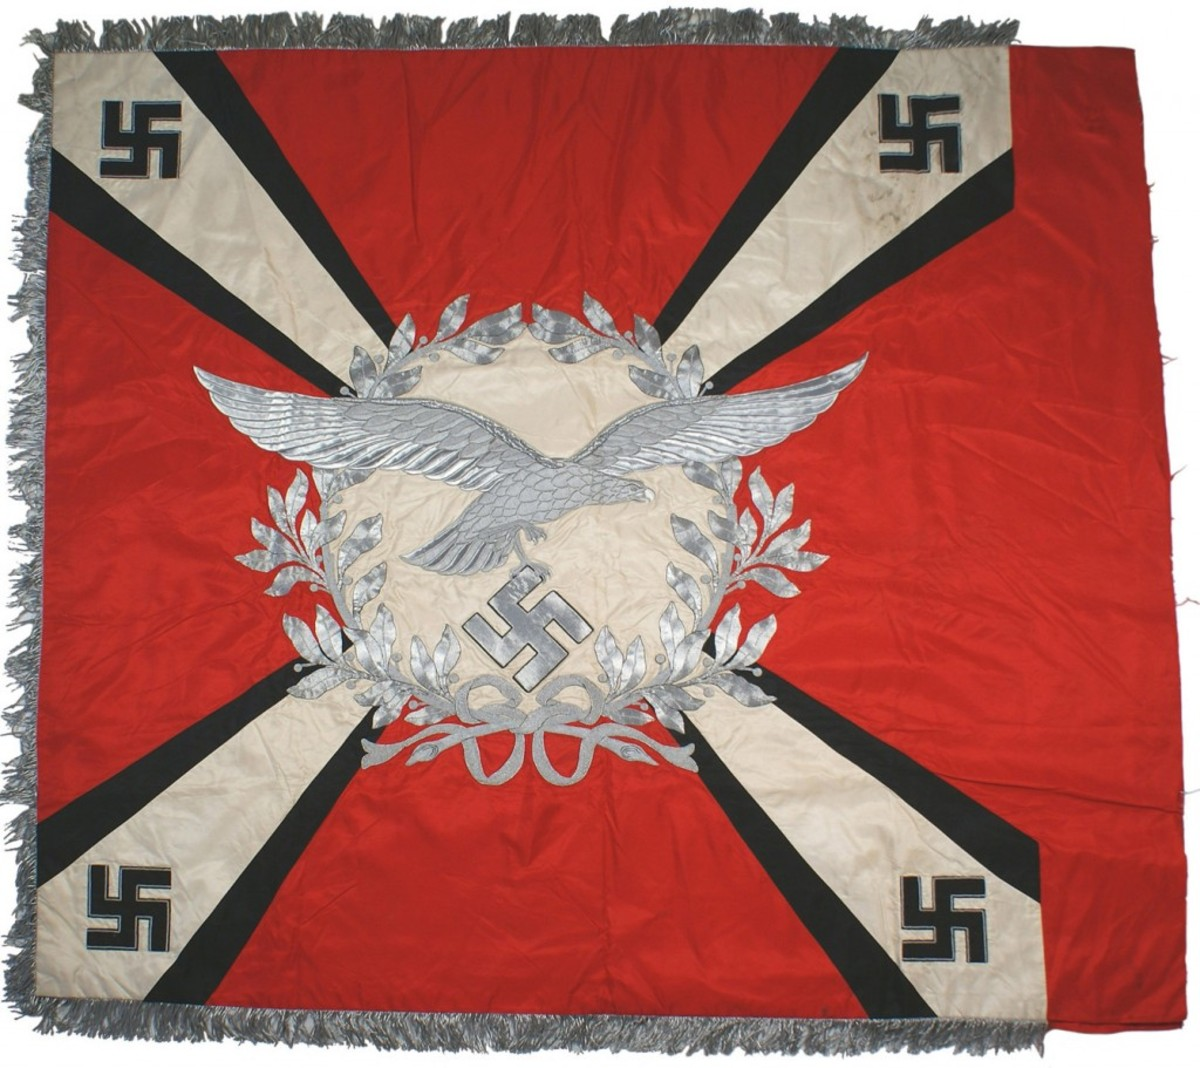 With an opening bid of $23,500, this Luftwaffe flag regiment standard could be the sale's top lot.